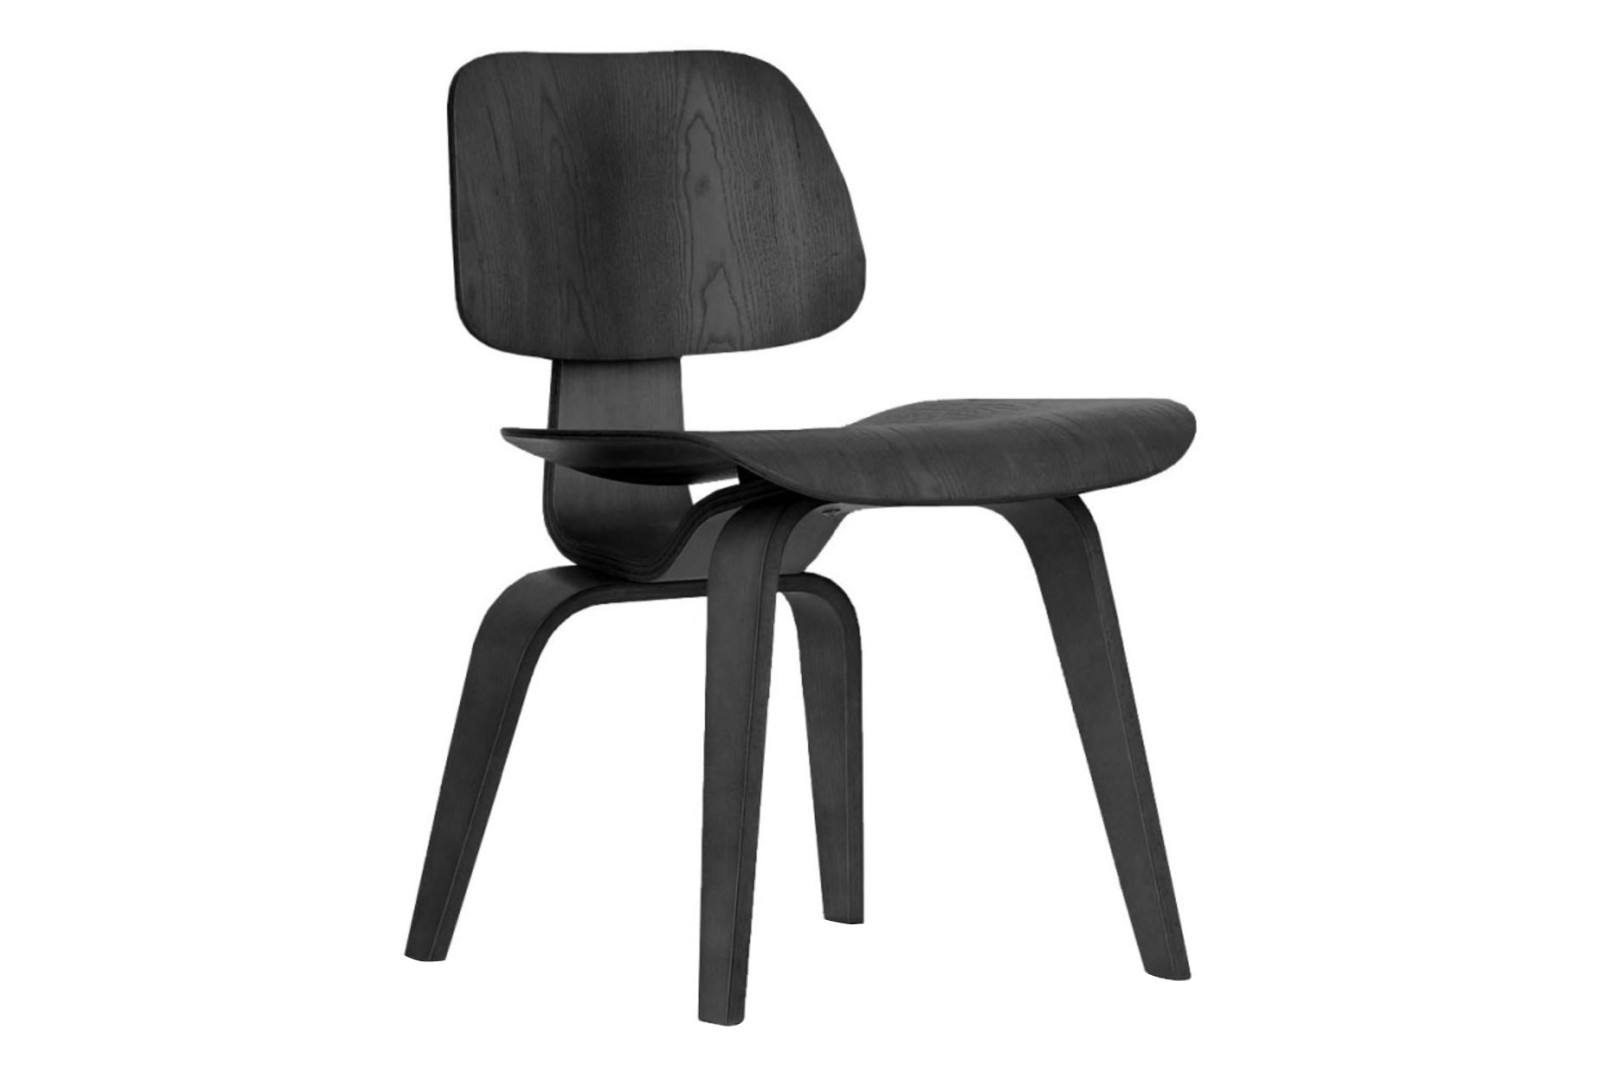 DCW Dining Chair 68 black ash, 04 glides for carpet